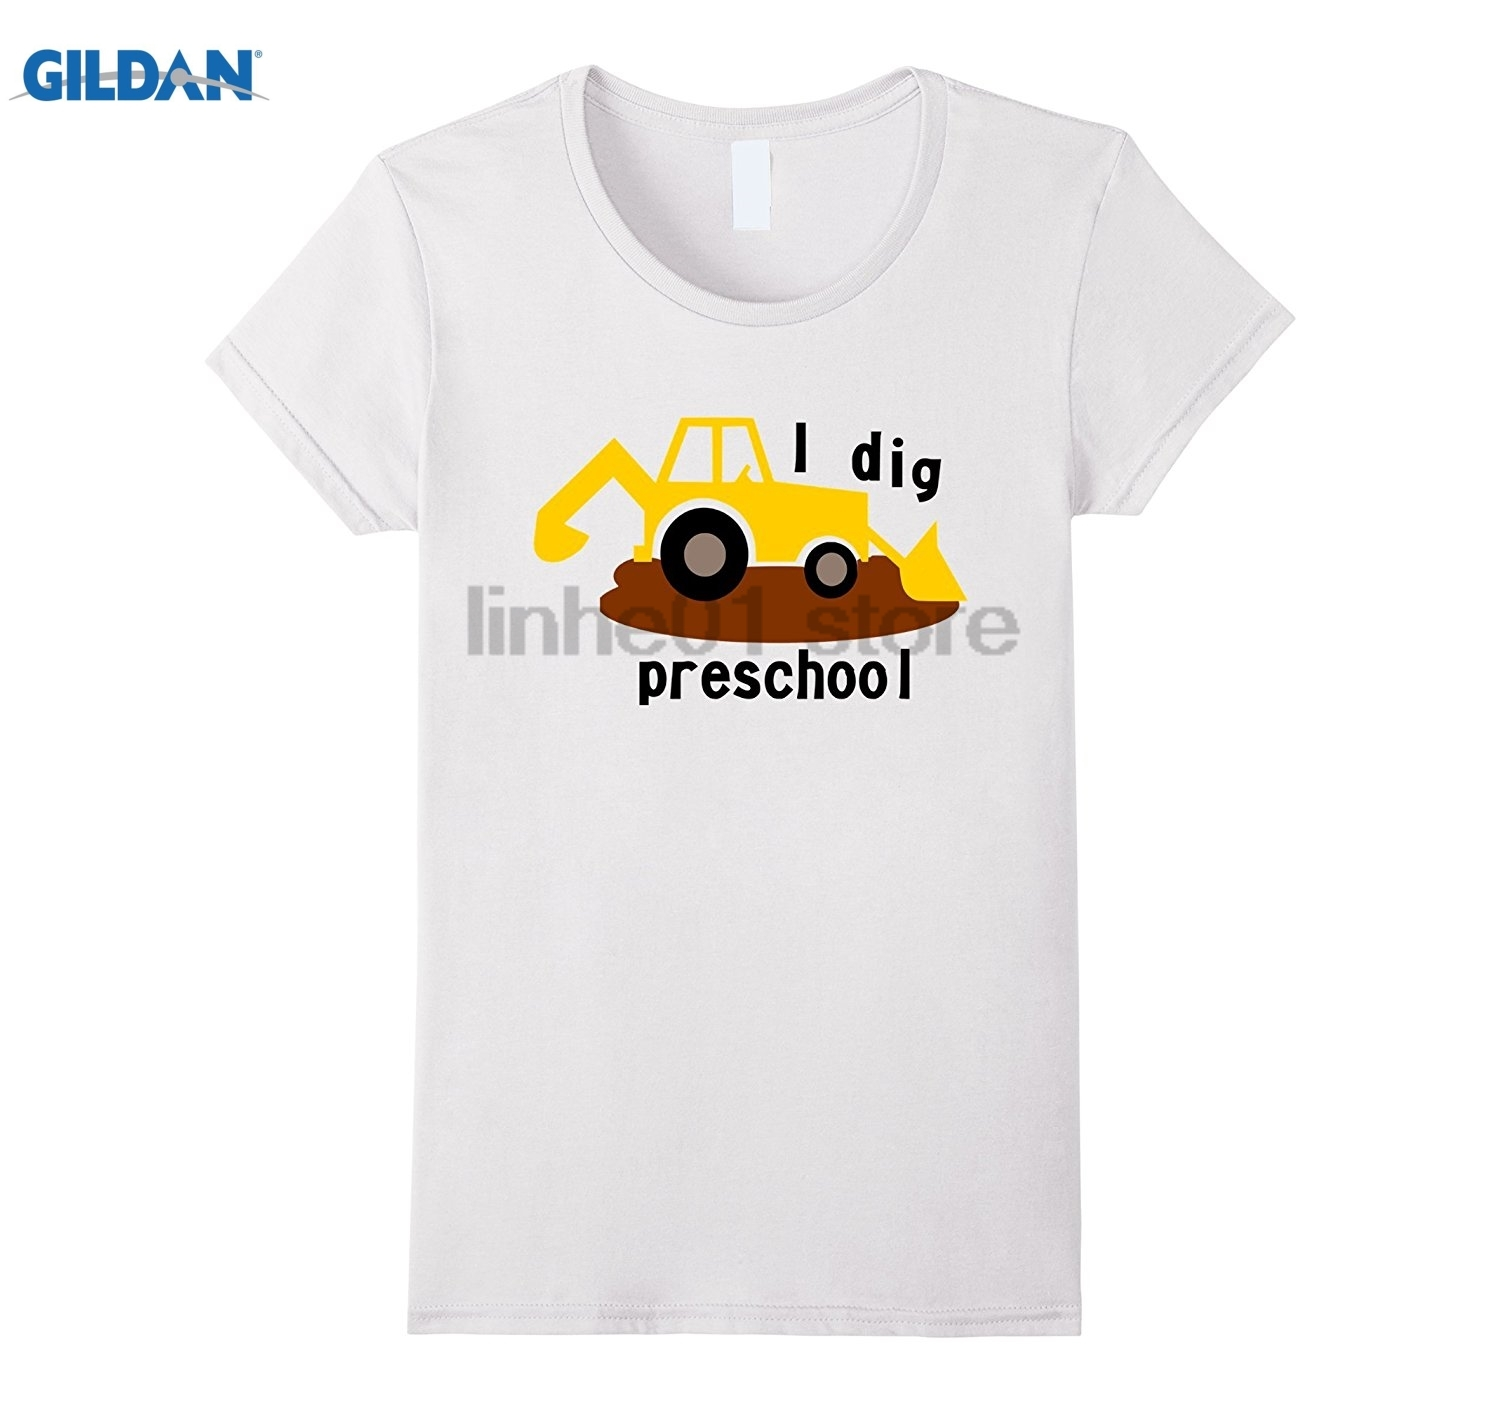 GILDAN I Dig Preschool T-shirt Mothers Day Ms. T-shirt Hot Womens T-shirt ...